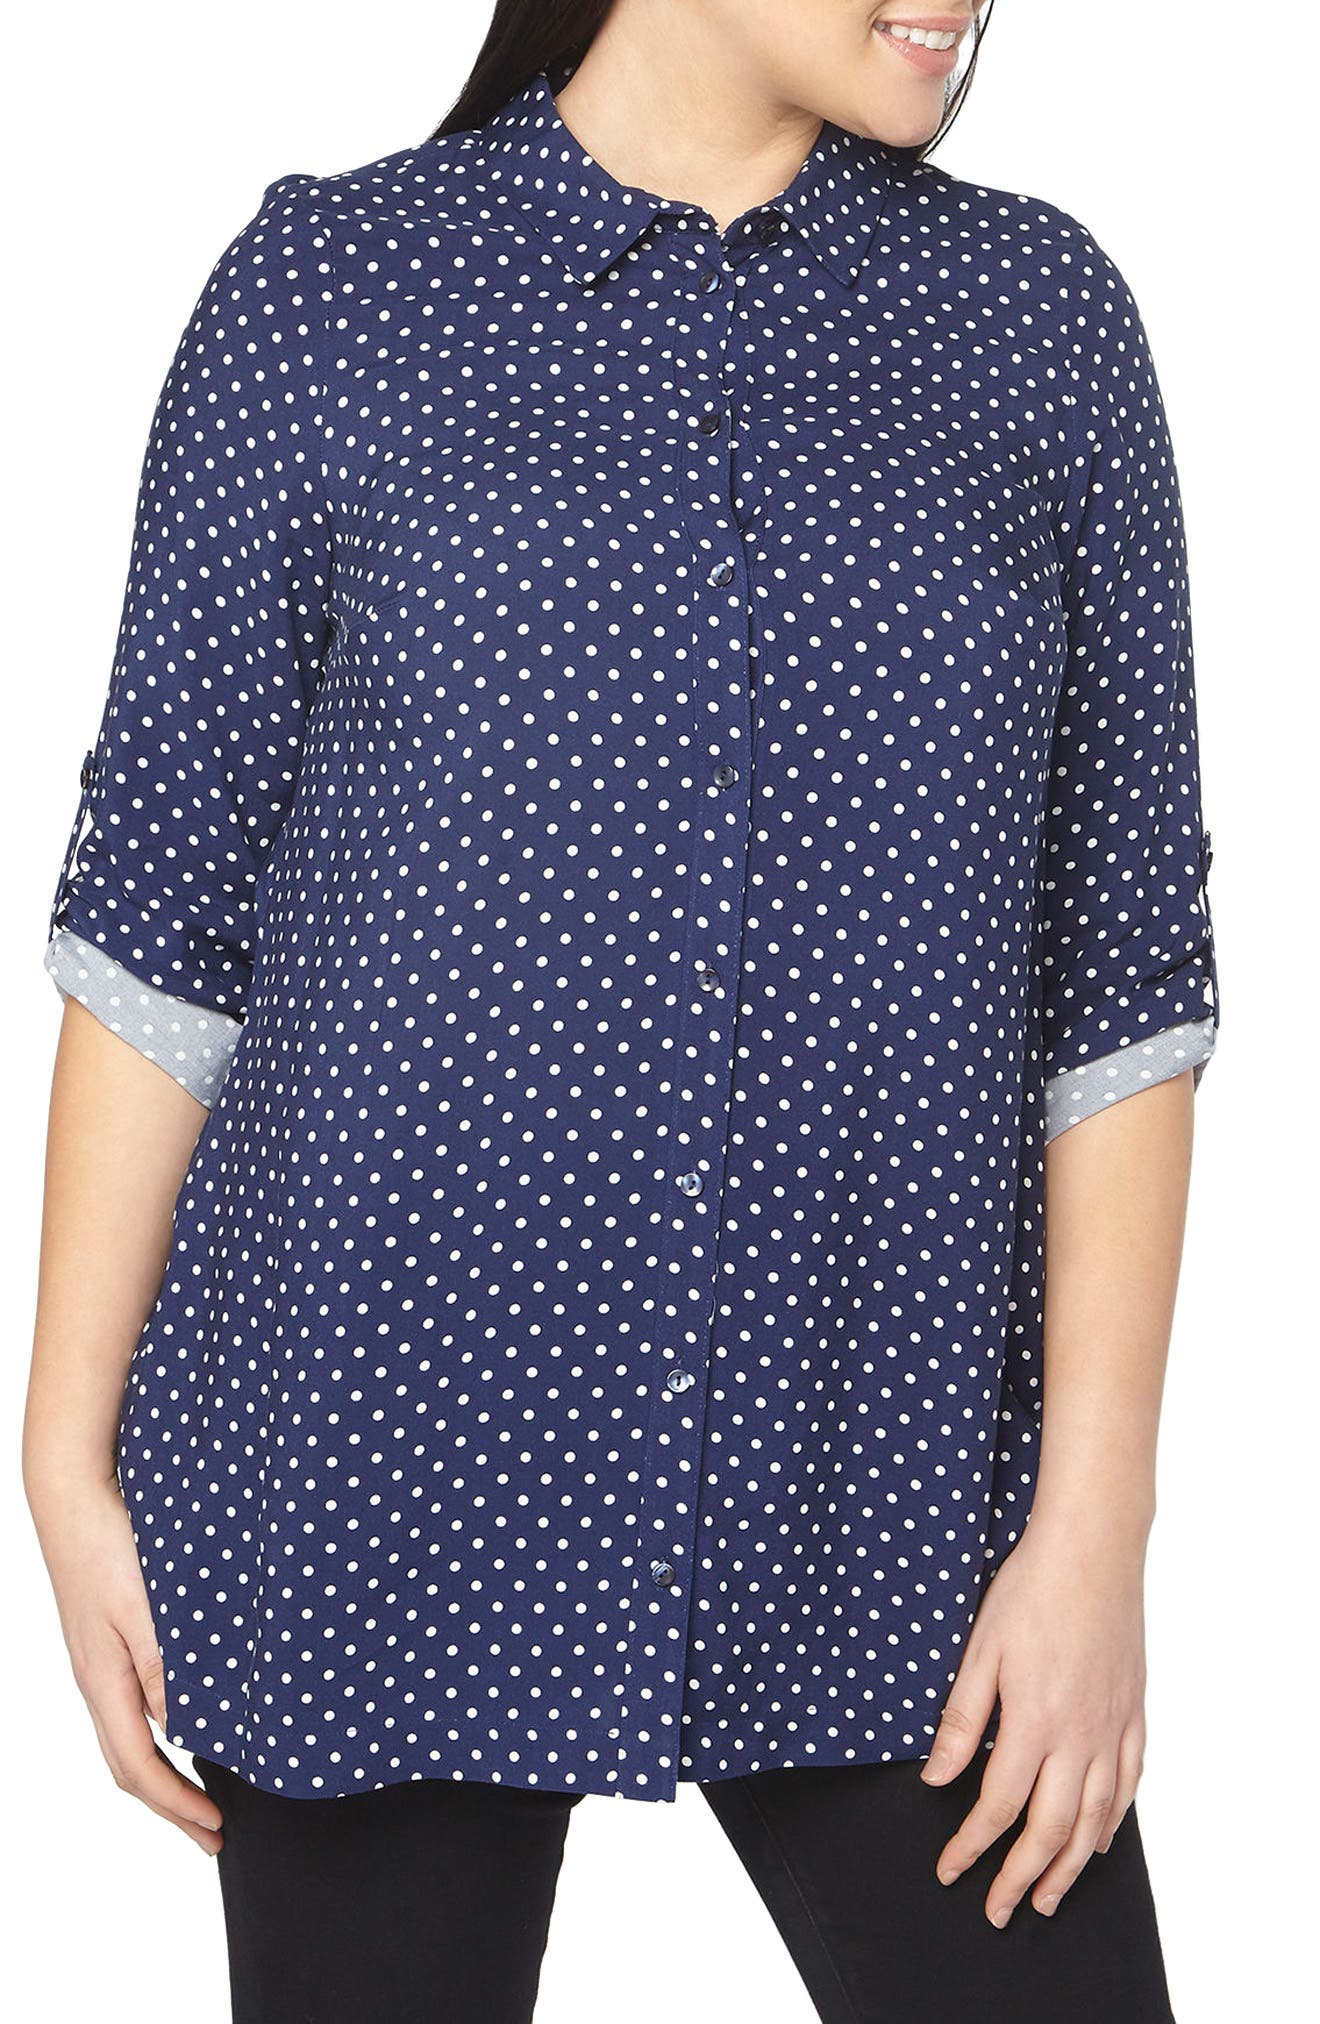 Evans Polka Dot Shirt (Plus Size)